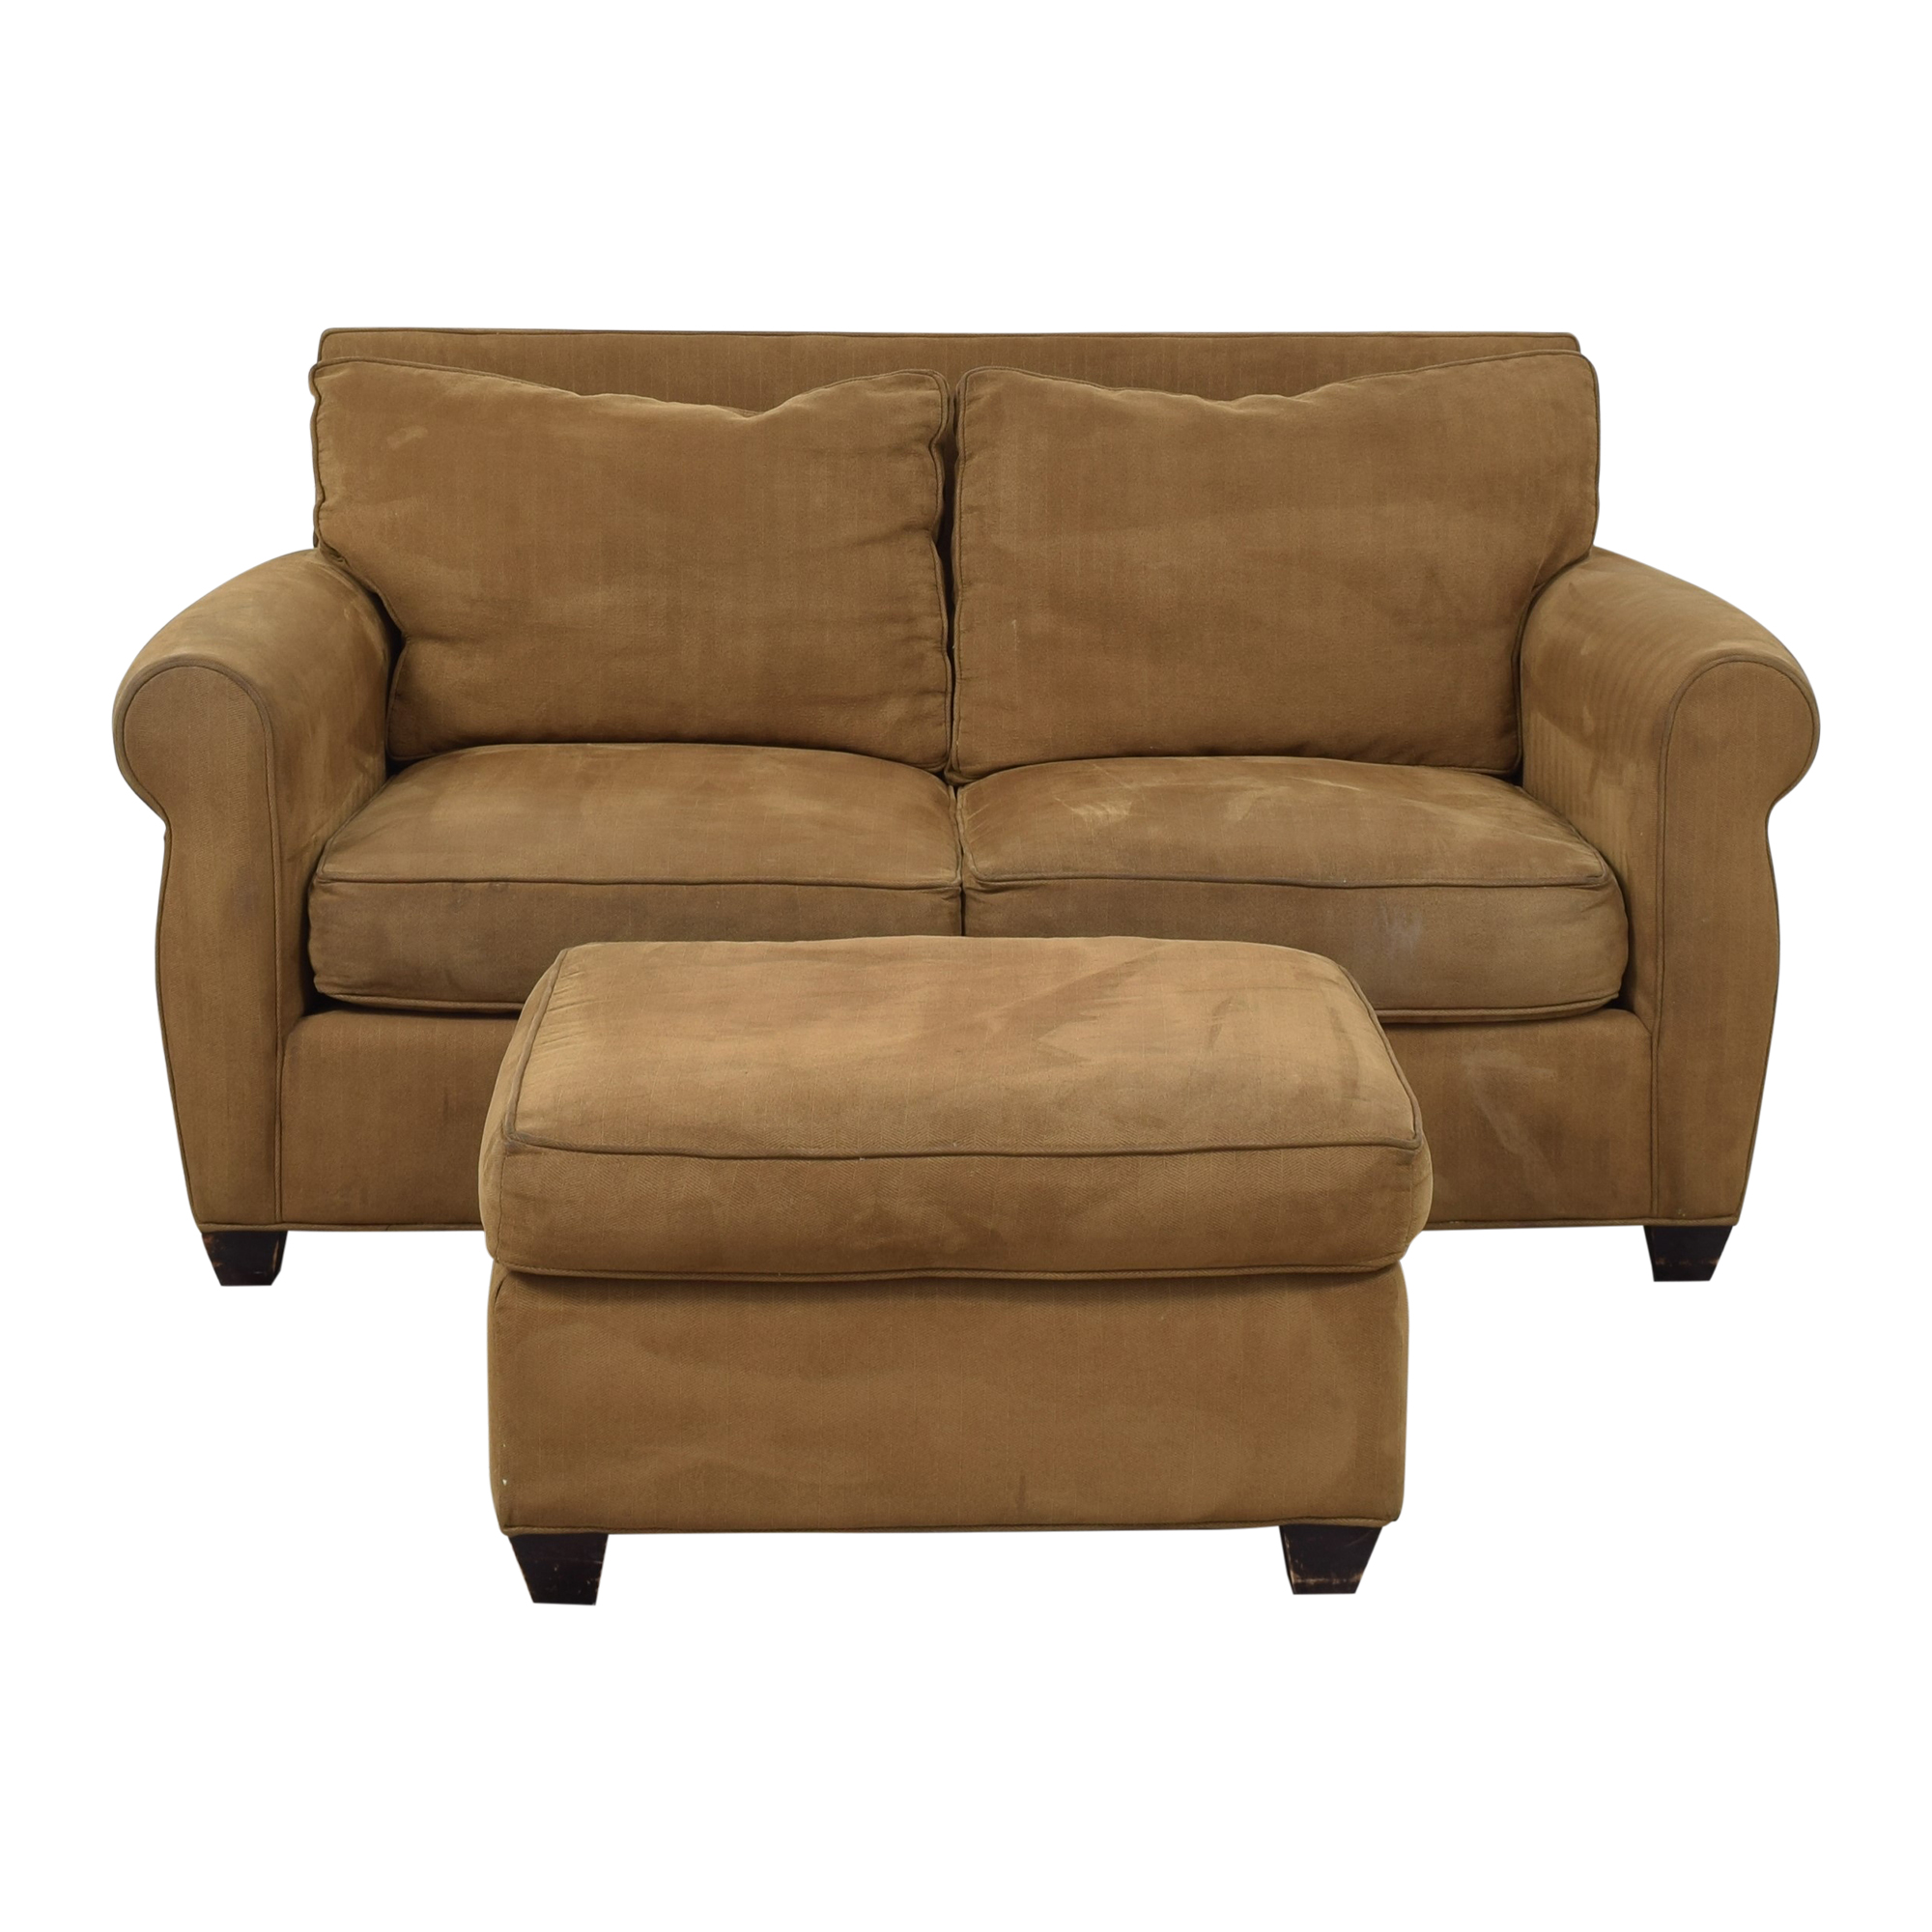 Domain Home Domain Home Loveseat and Ottoman nyc